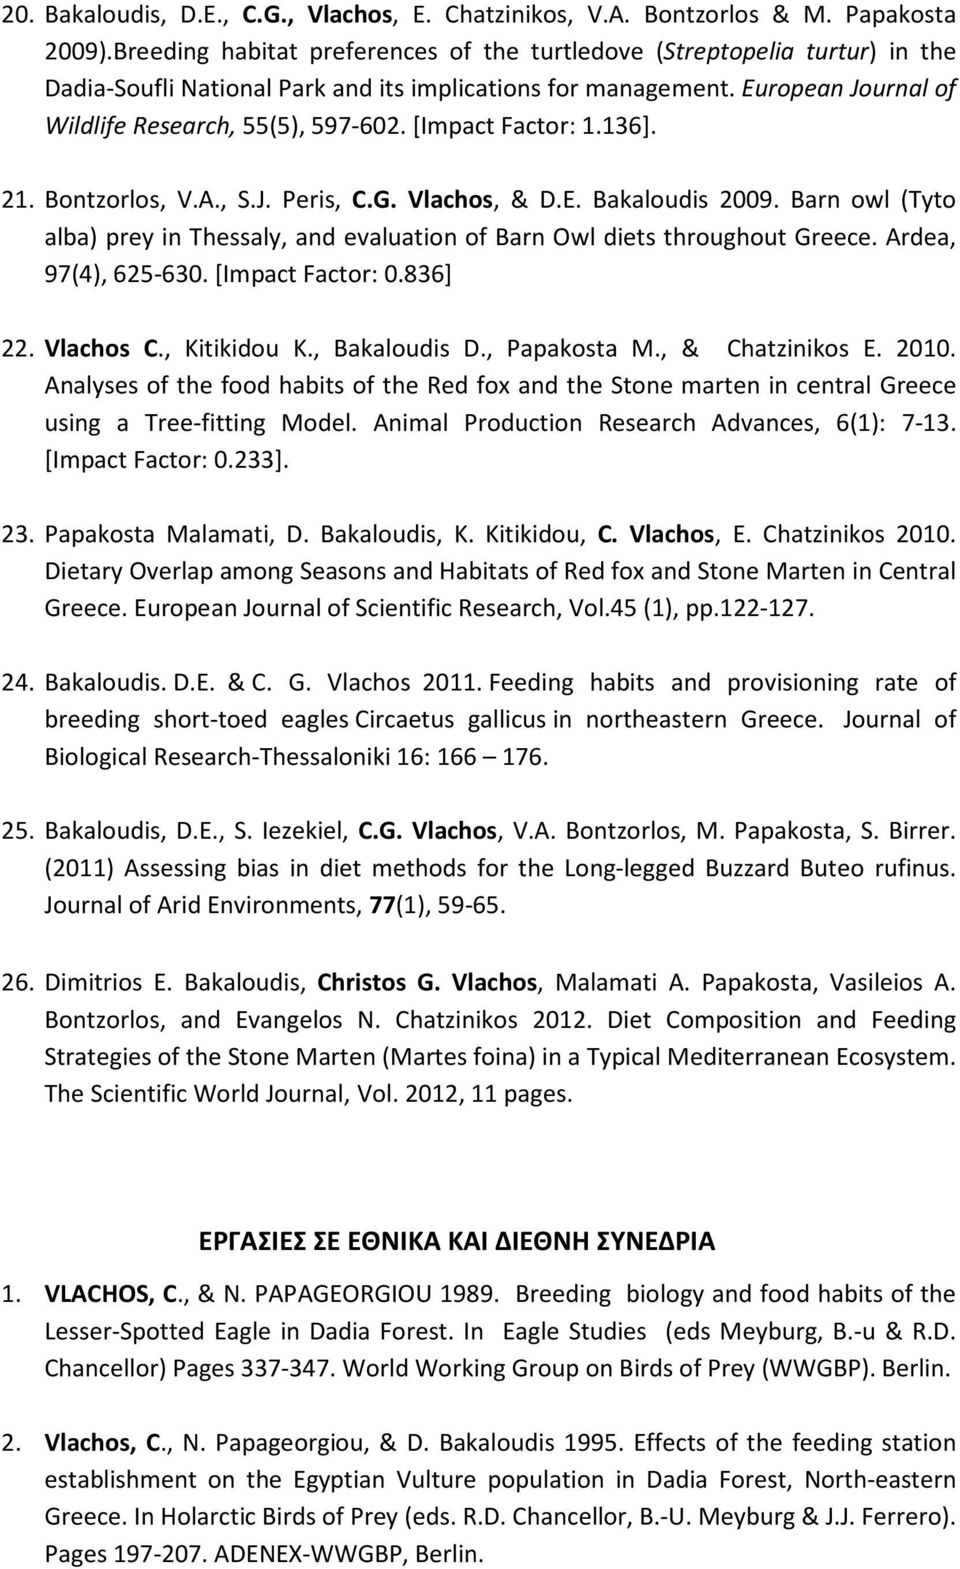 [Impact Factor: 1.136]. 21. Bontzorlos, V.A., S.J. Peris, C.G. Vlachos, & D.E. Bakaloudis 2009. Barn owl (Tyto alba) prey in Thessaly, and evaluation of Barn Owl diets throughout Greece.